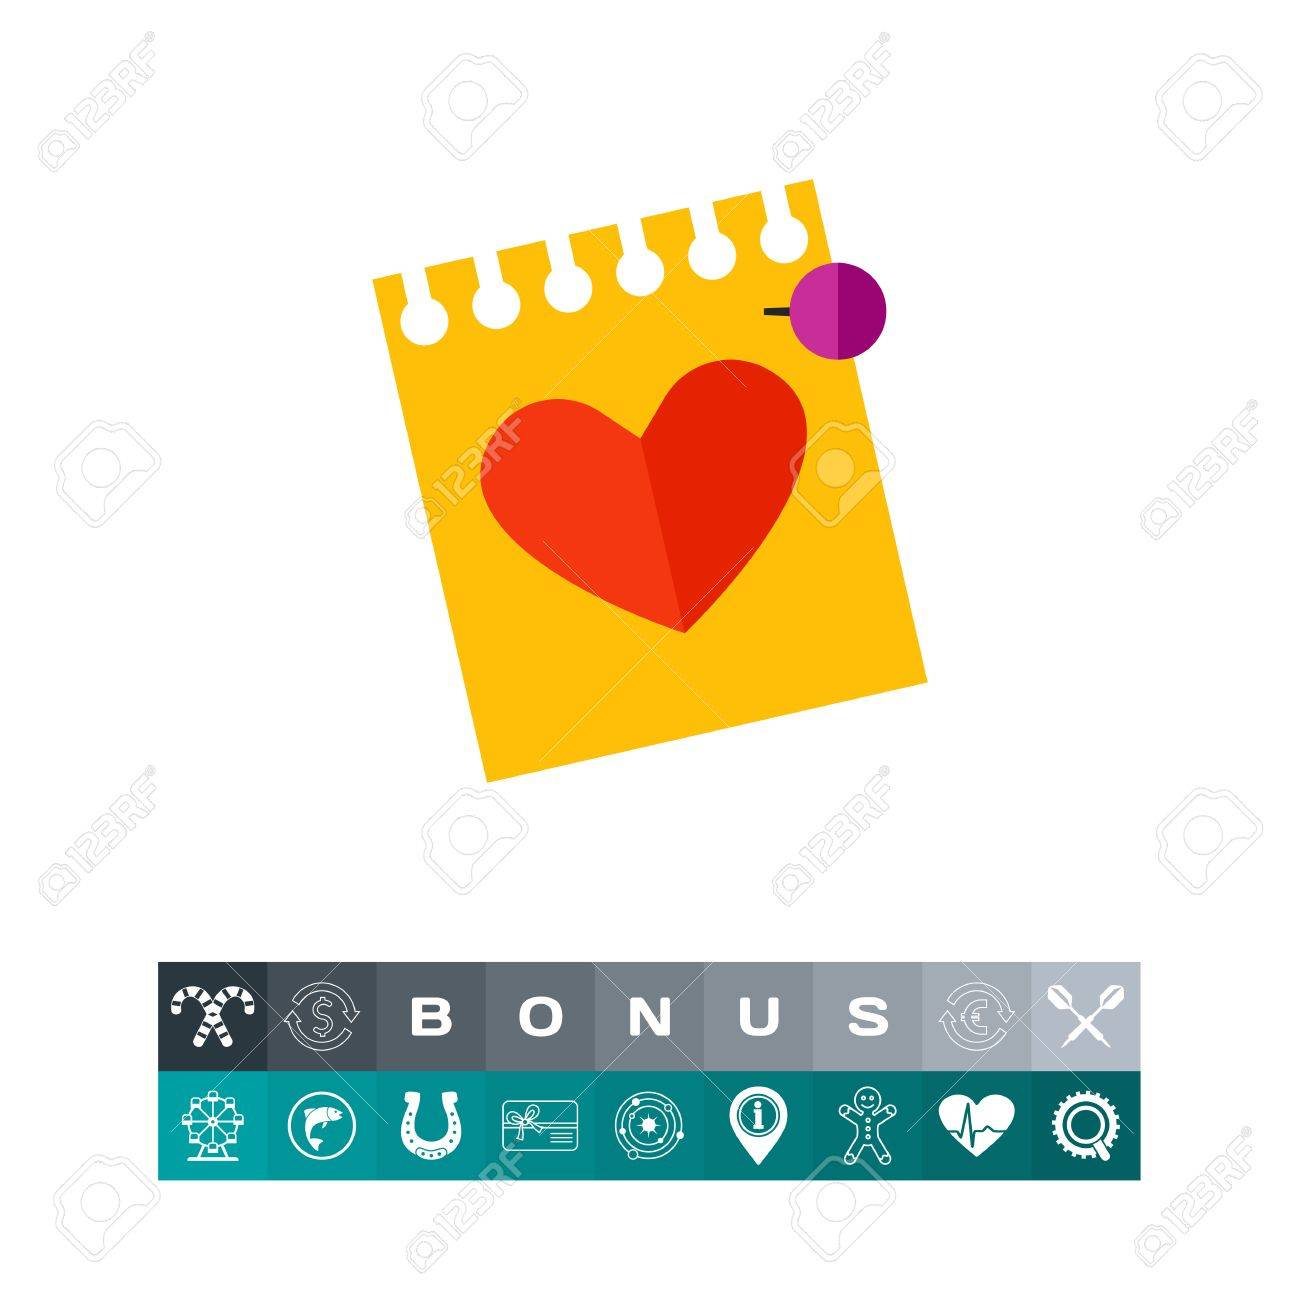 Icon Of Yellow Sheet With Love Letter Or Calendar Page With Heart